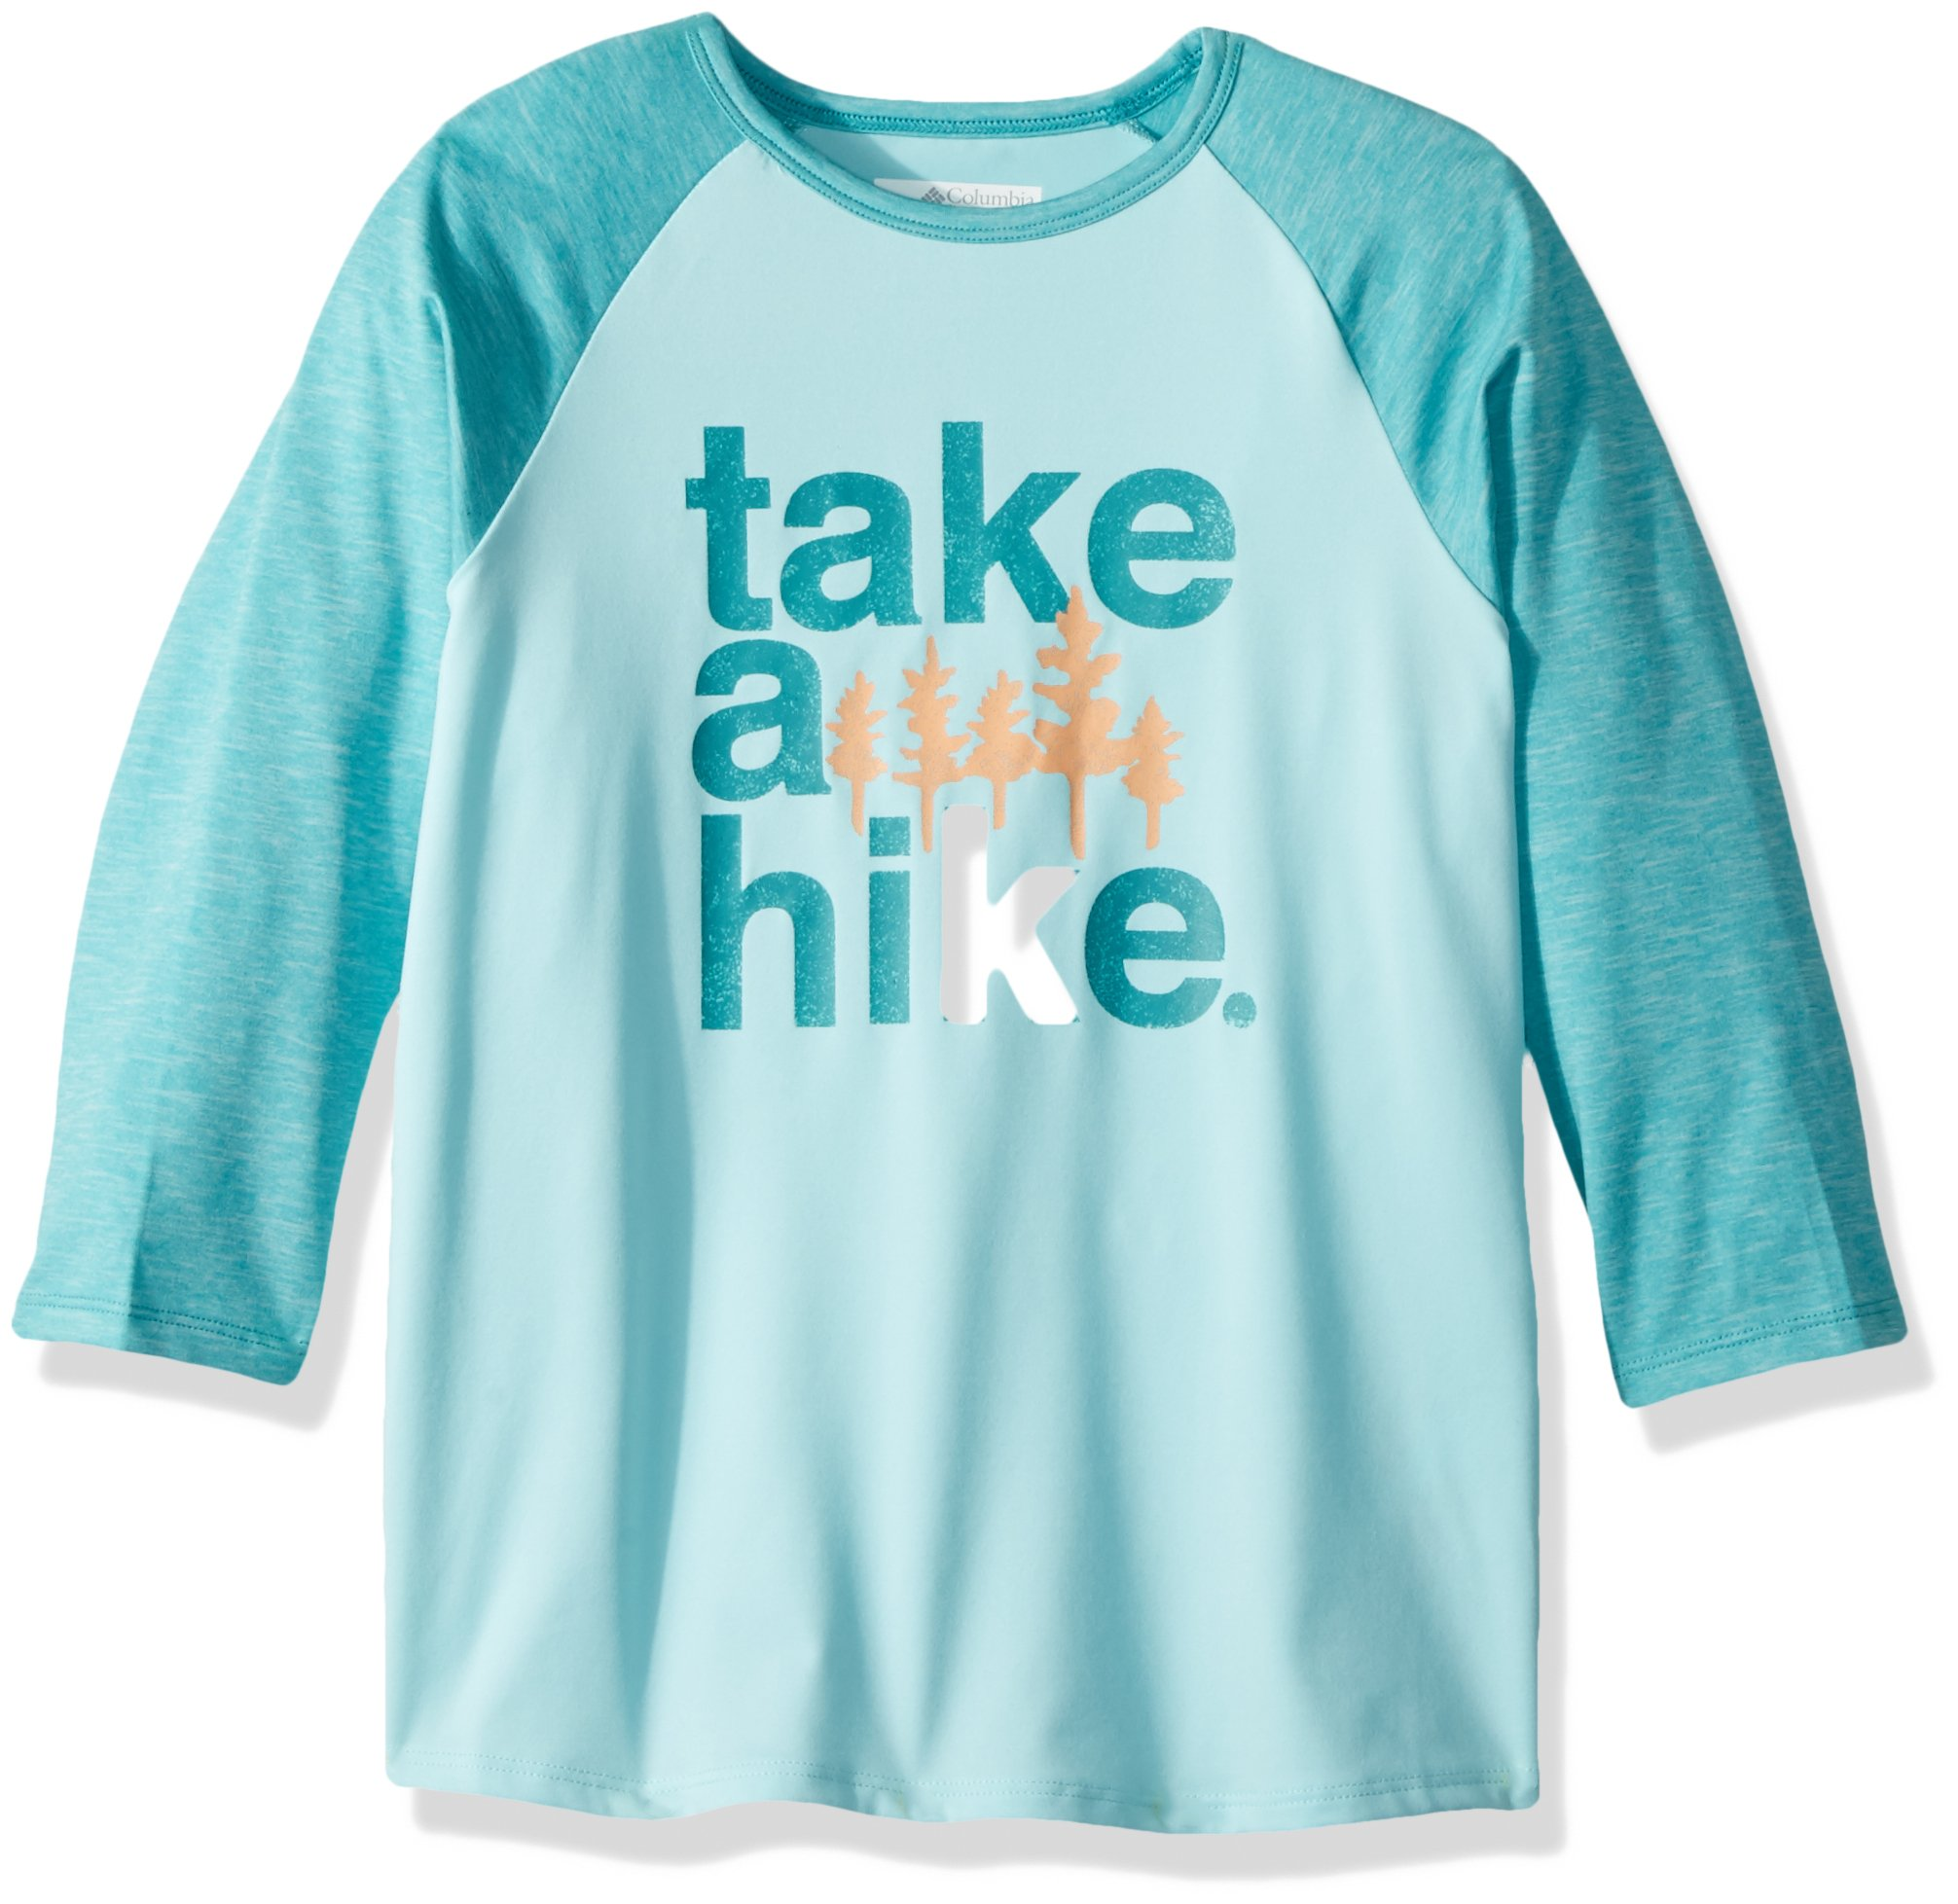 Columbia Boys Outdoor Elements 3/4 Sleeve Shirt, Candy Mint Hike Graphic, X-Small by Columbia